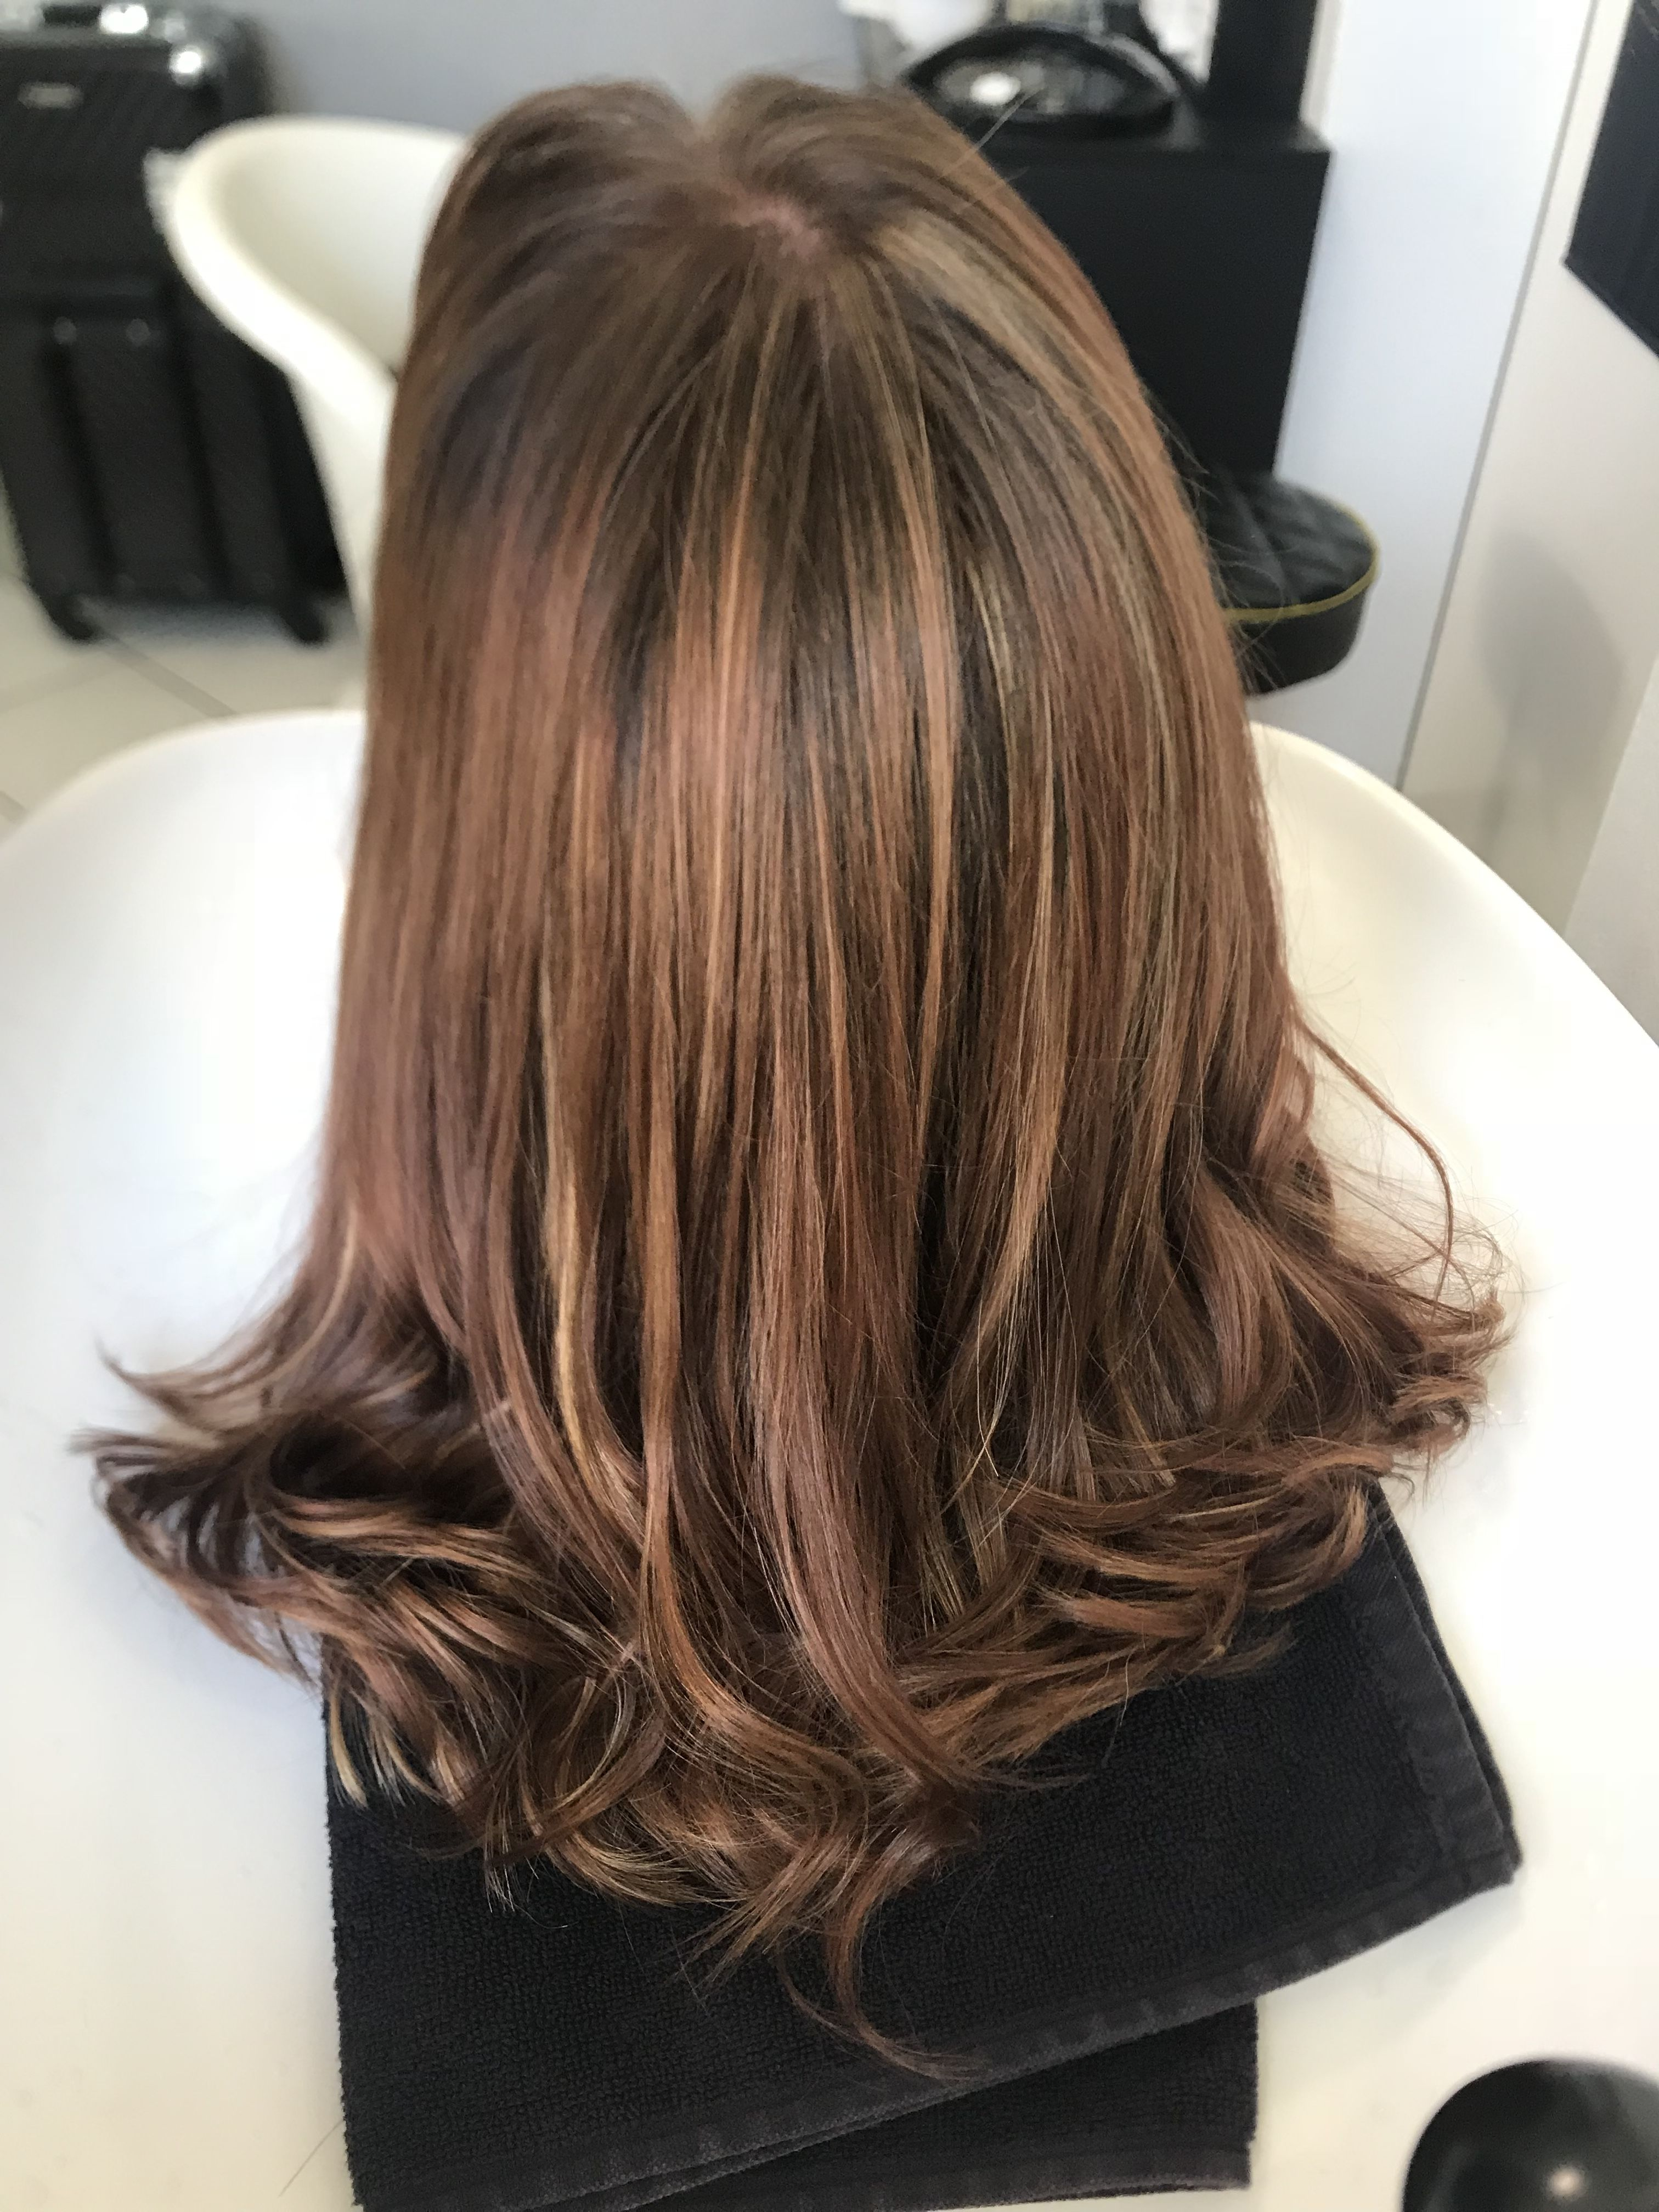 Ombre Hair Technique Step By Step Color Touch 30g 8 73 30g 6 75 Highlights Blondor 4 In